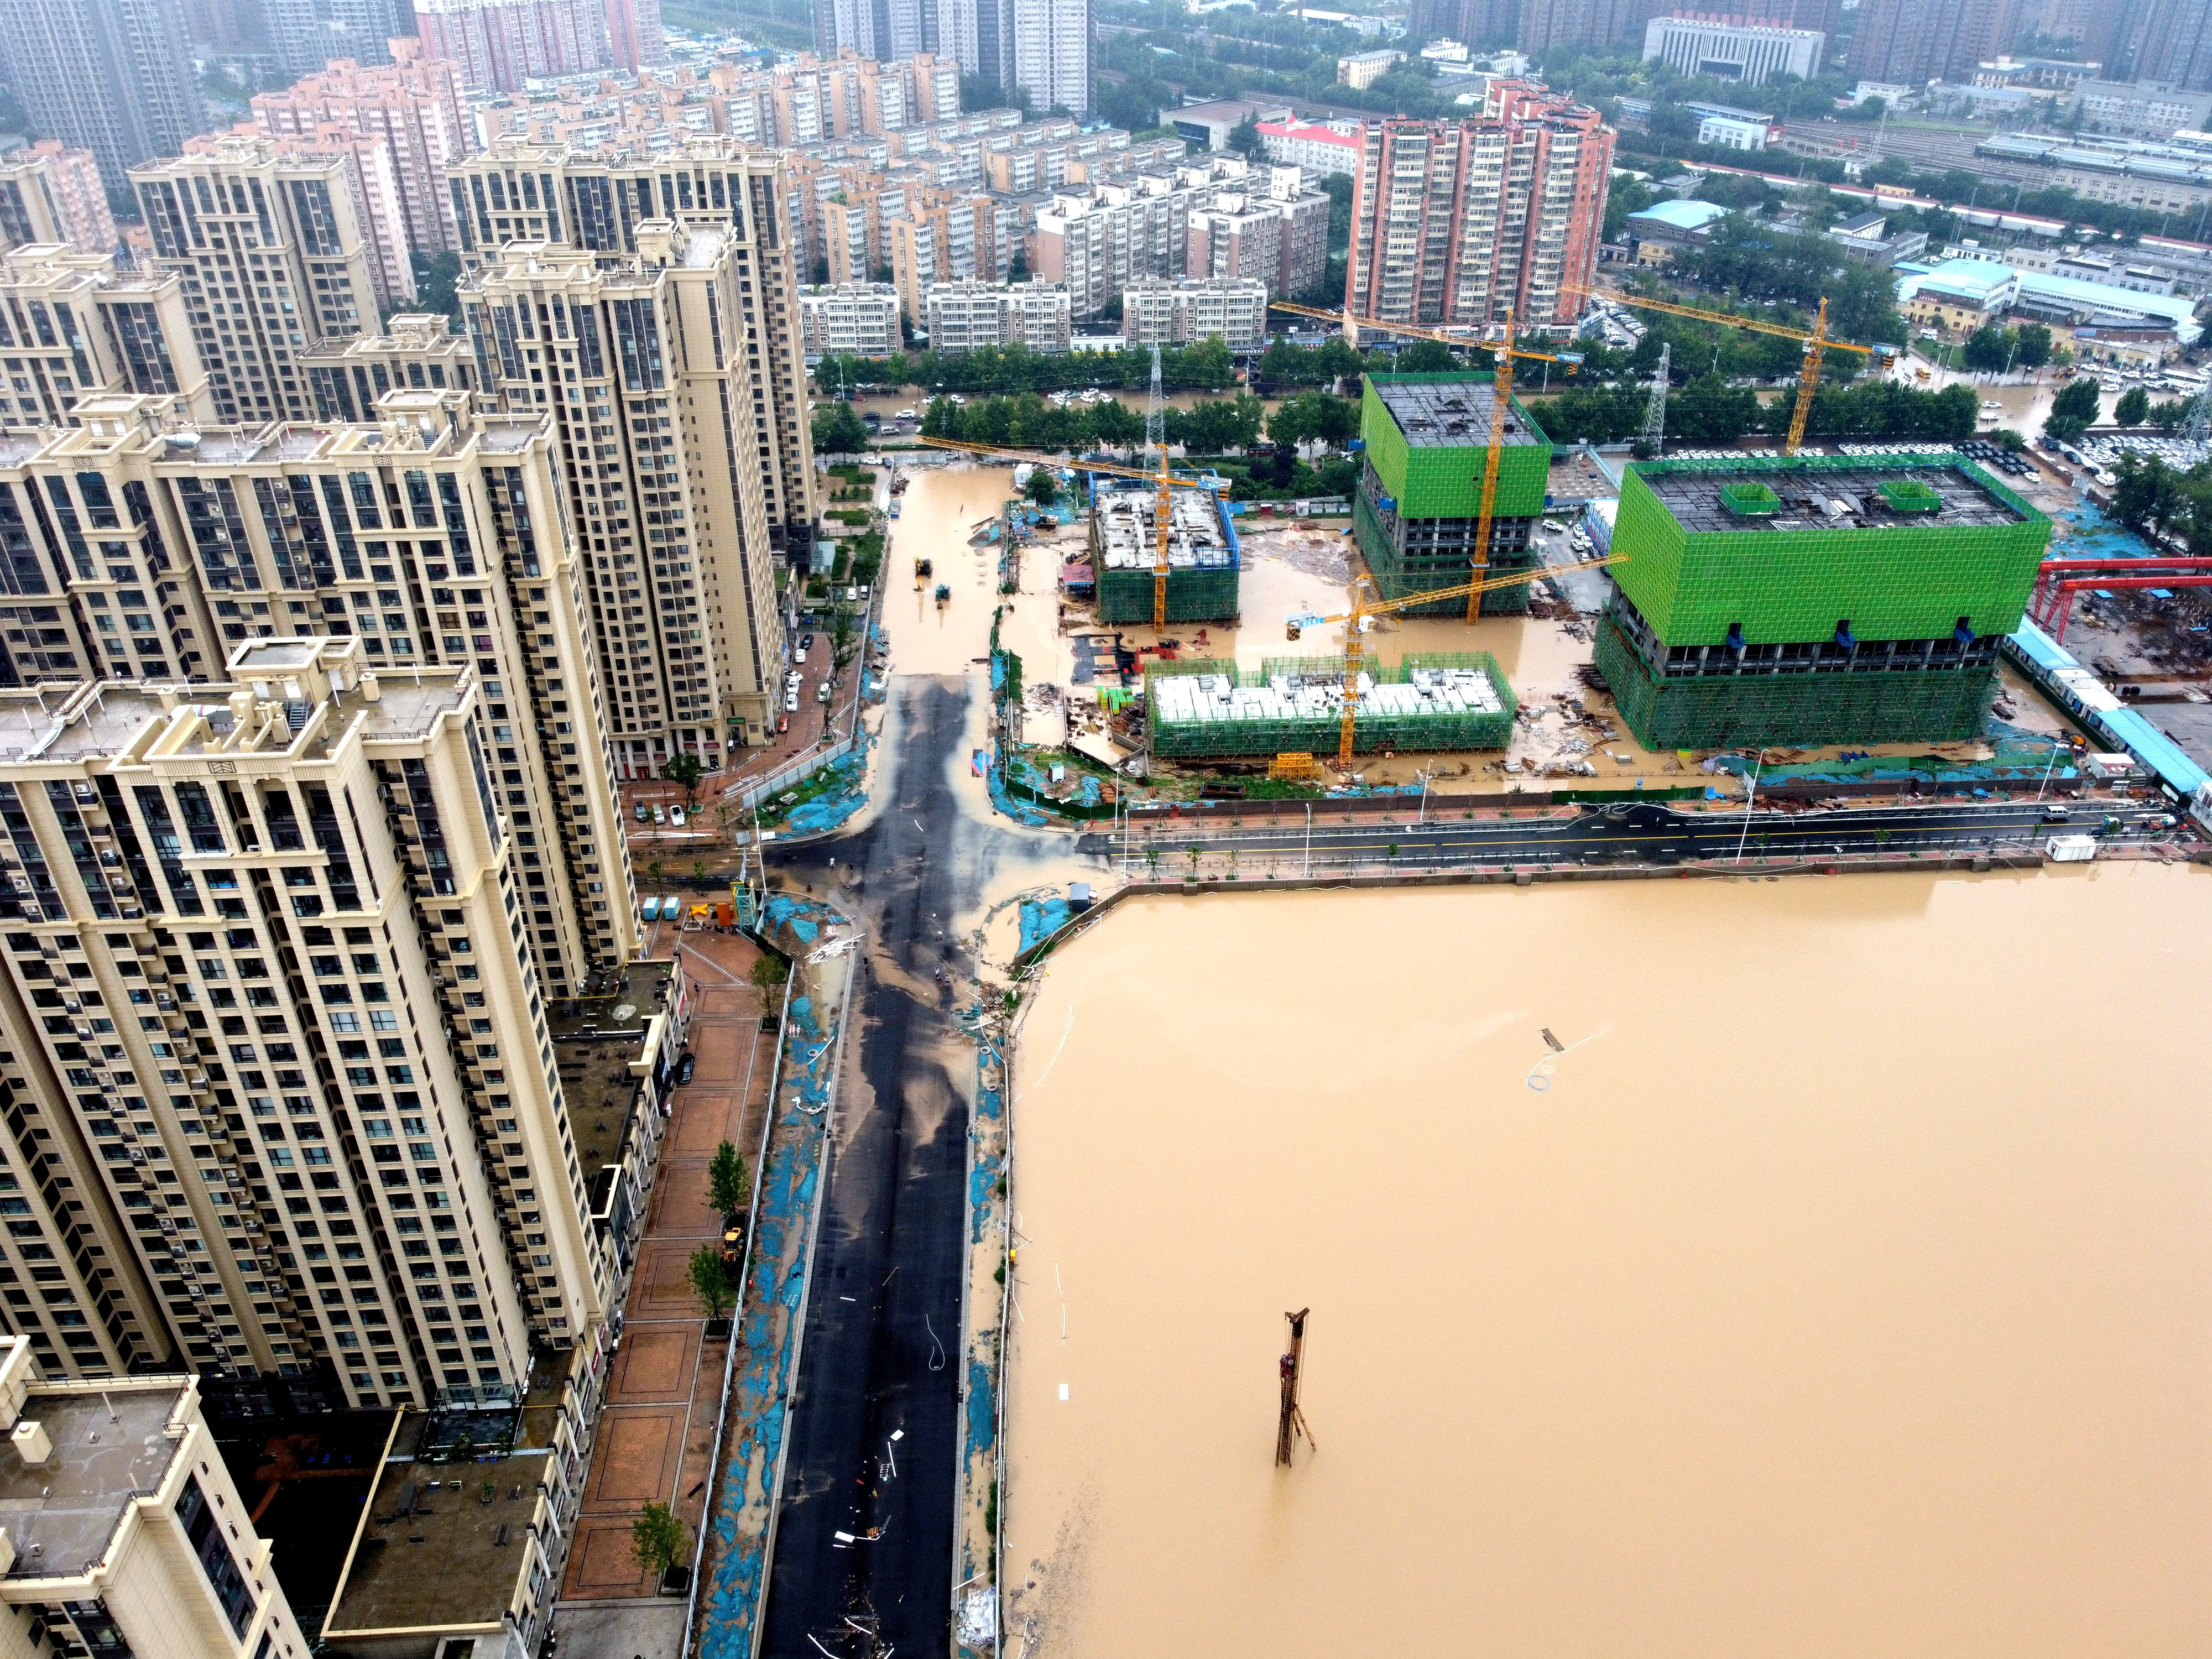 An aerial view shows the flooded areas following heavy rainfall in Zhengzhou, Henan province, China July 21, 2021. cnsphoto via REUTERS